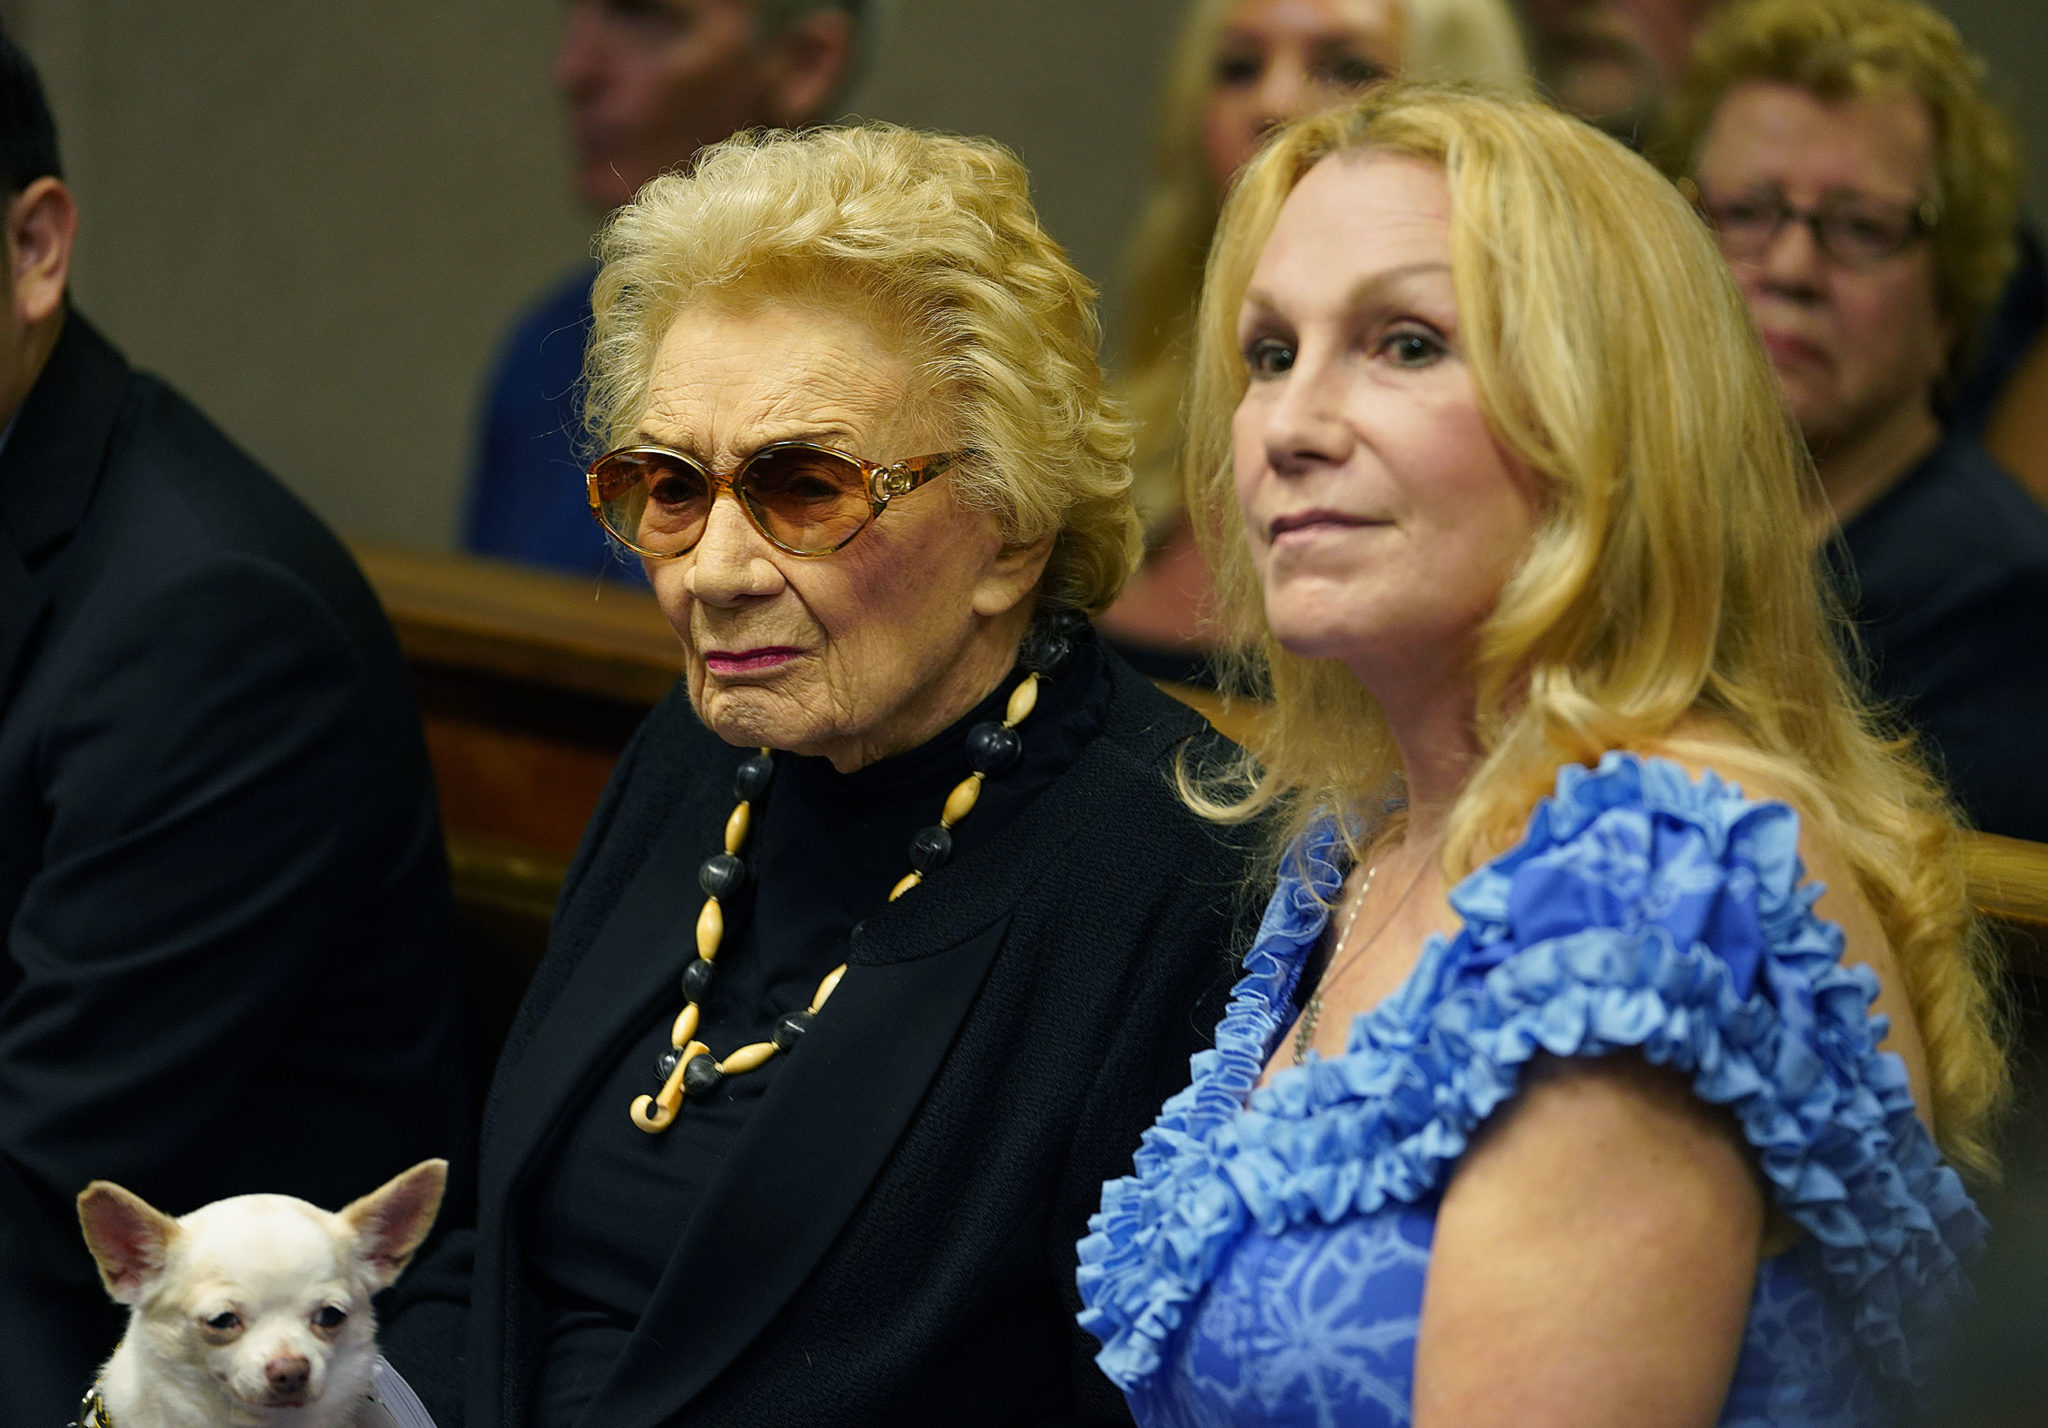 <p><strong>LEGAL BATTLE:</strong> Hawaiian heiress Abigail Kawananakoa, 92, with her wife, Veronica Worth, and her Chihuahua during a court hearing in September. They remain locked in a legal dispute over what will happen with Kawananakoa's $215 million trust and the fate of a foundation she set up to benefit Hawaiian causes. / Cory Lum</p>